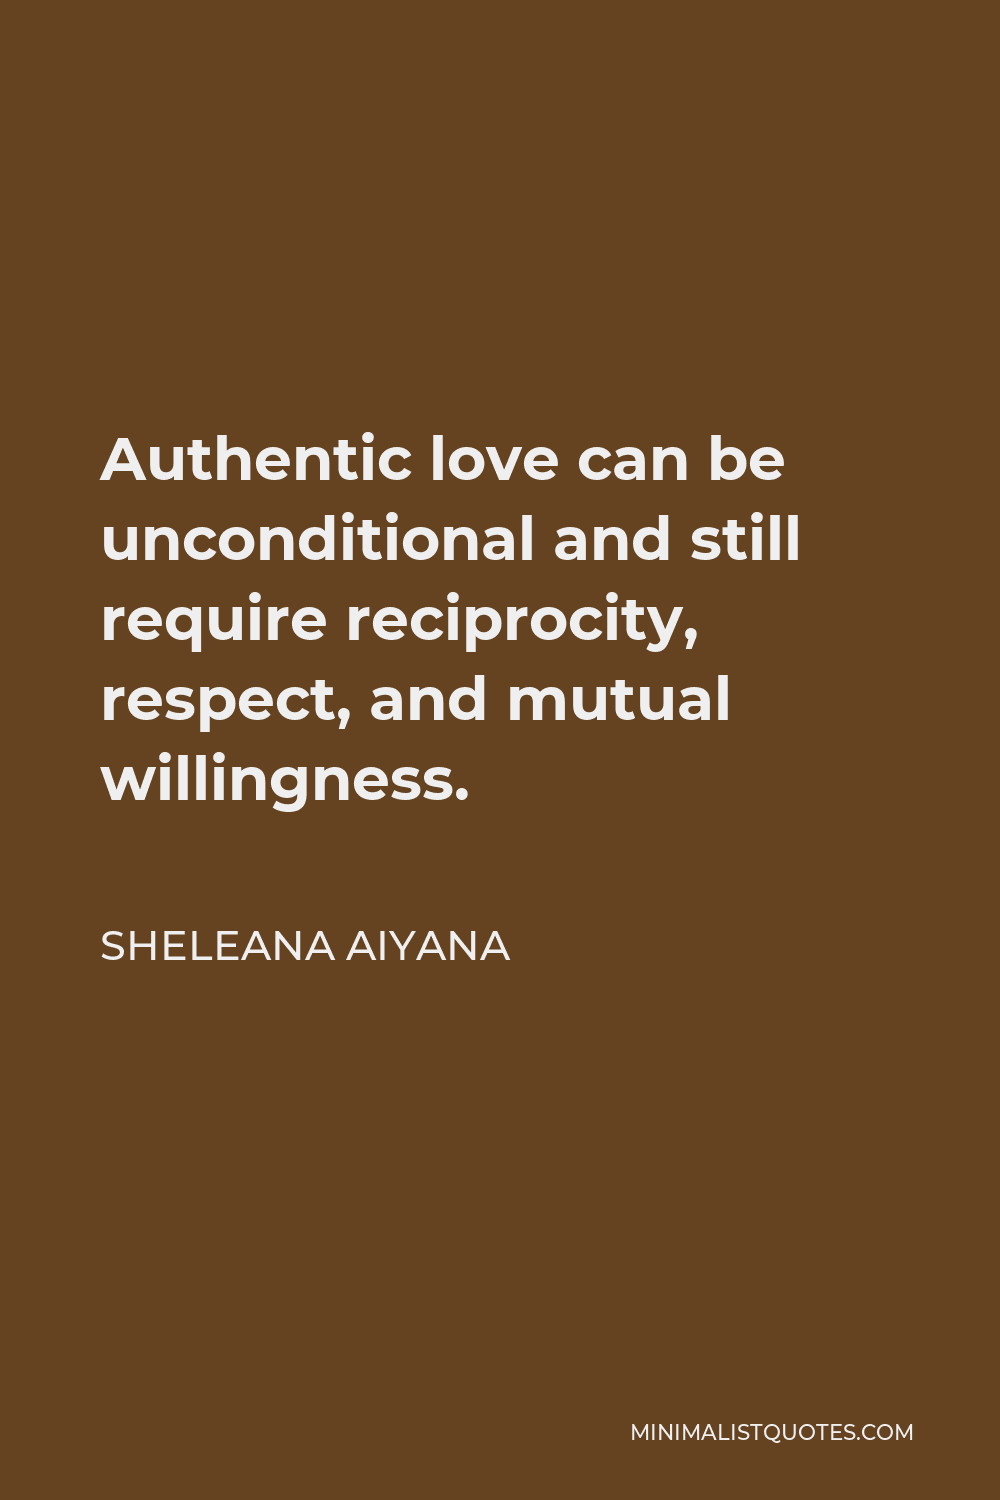 Sheleana Aiyana Quote - Authentic love can be unconditional and still require reciprocity, respect, and mutual willingness.